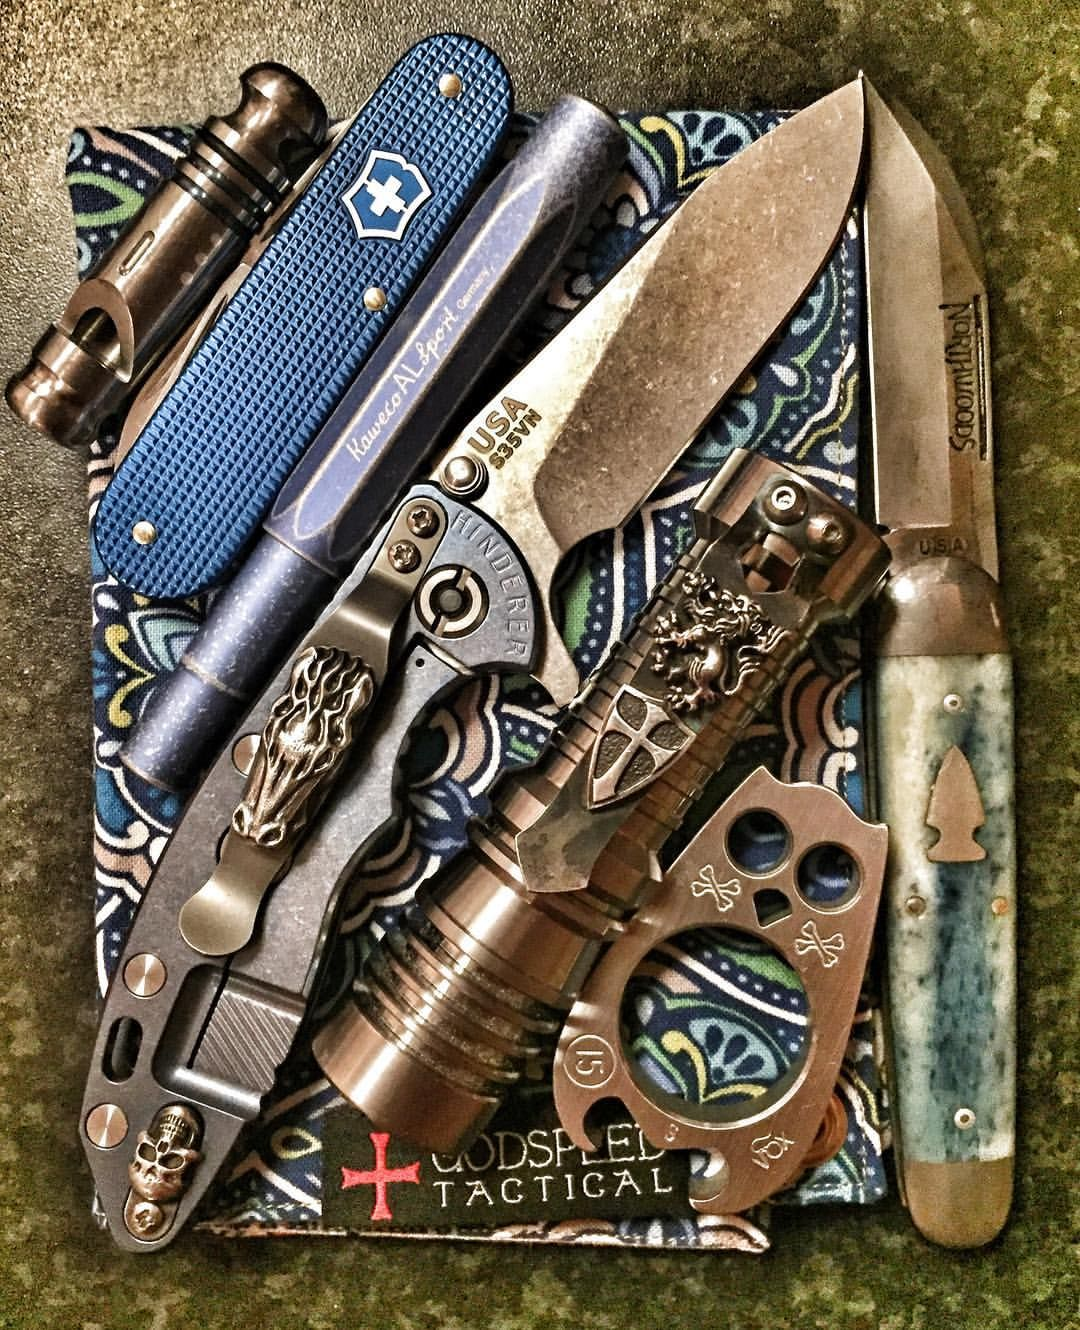 Pin On Everyday Carry Tactical